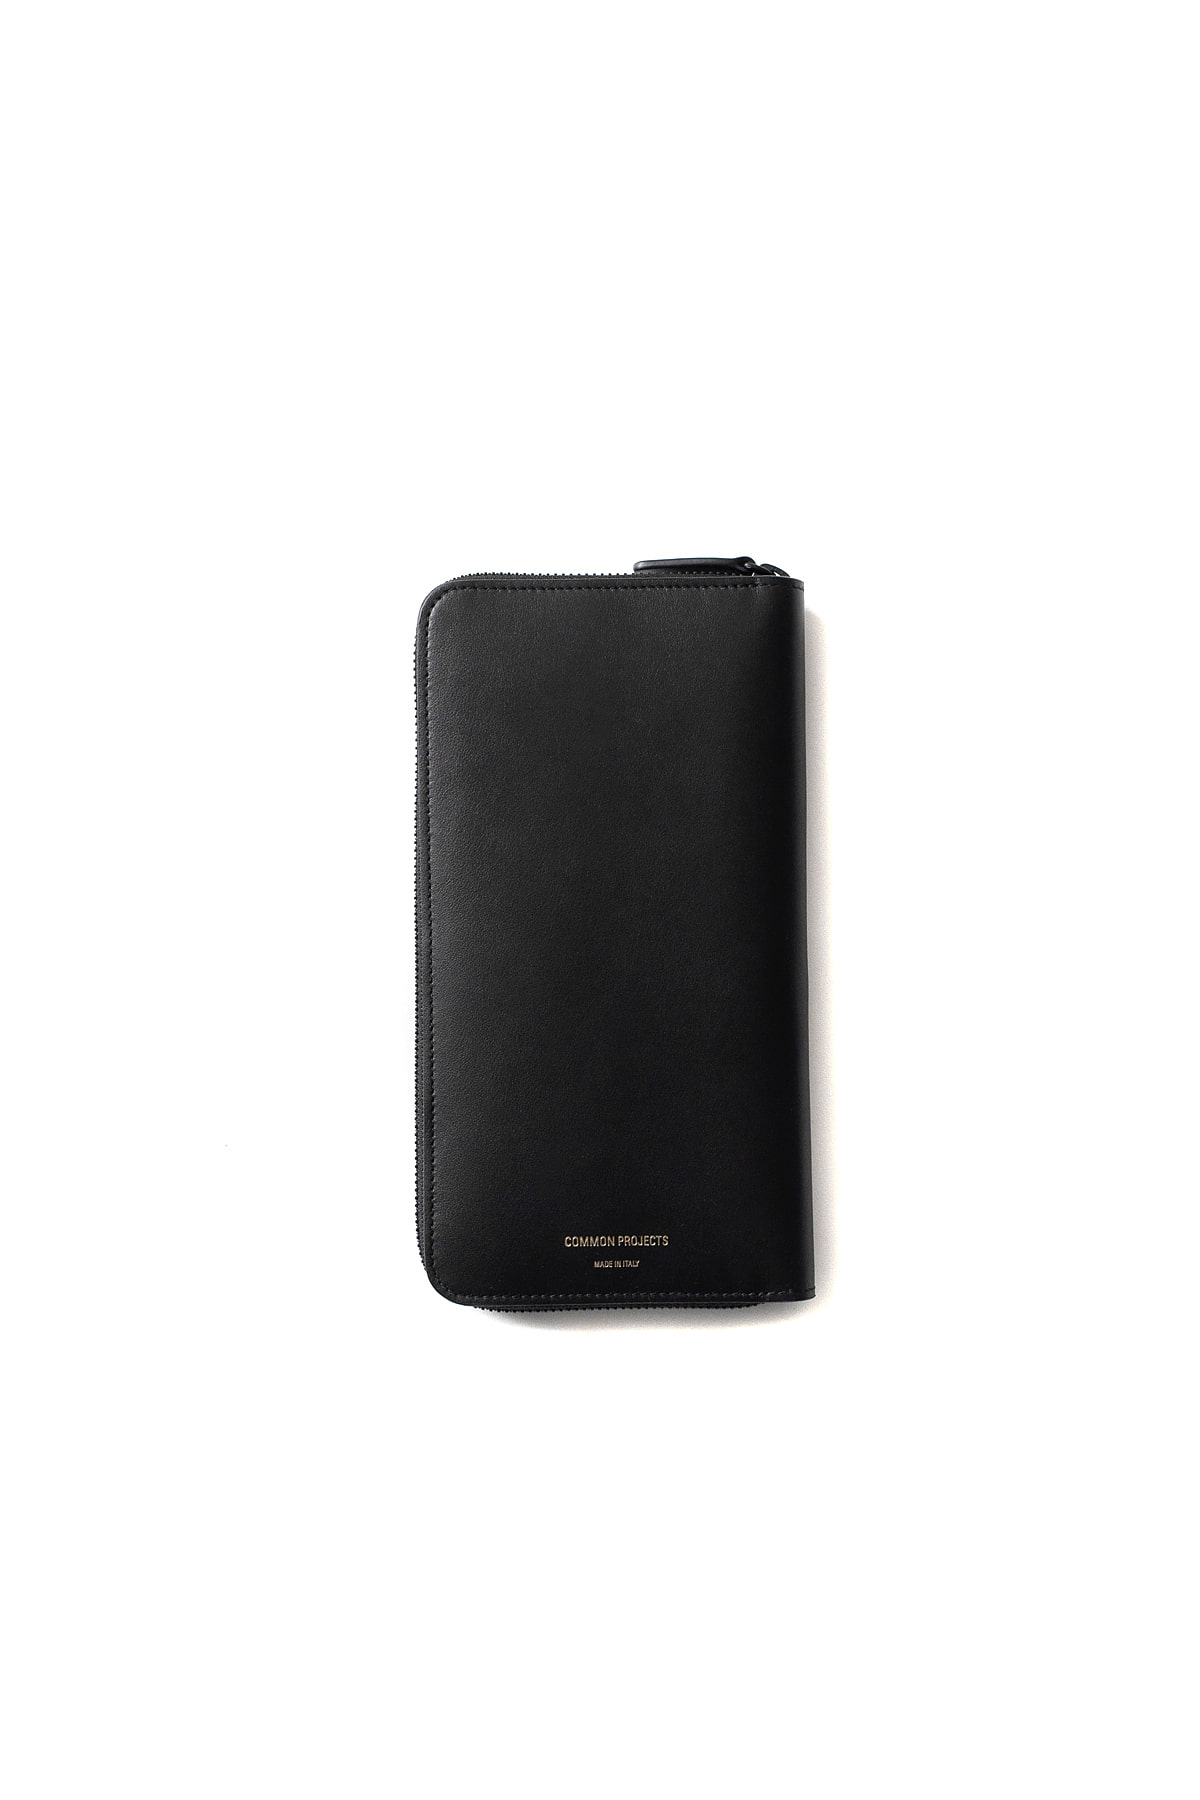 Common Projects : Continental Wallet (Black)